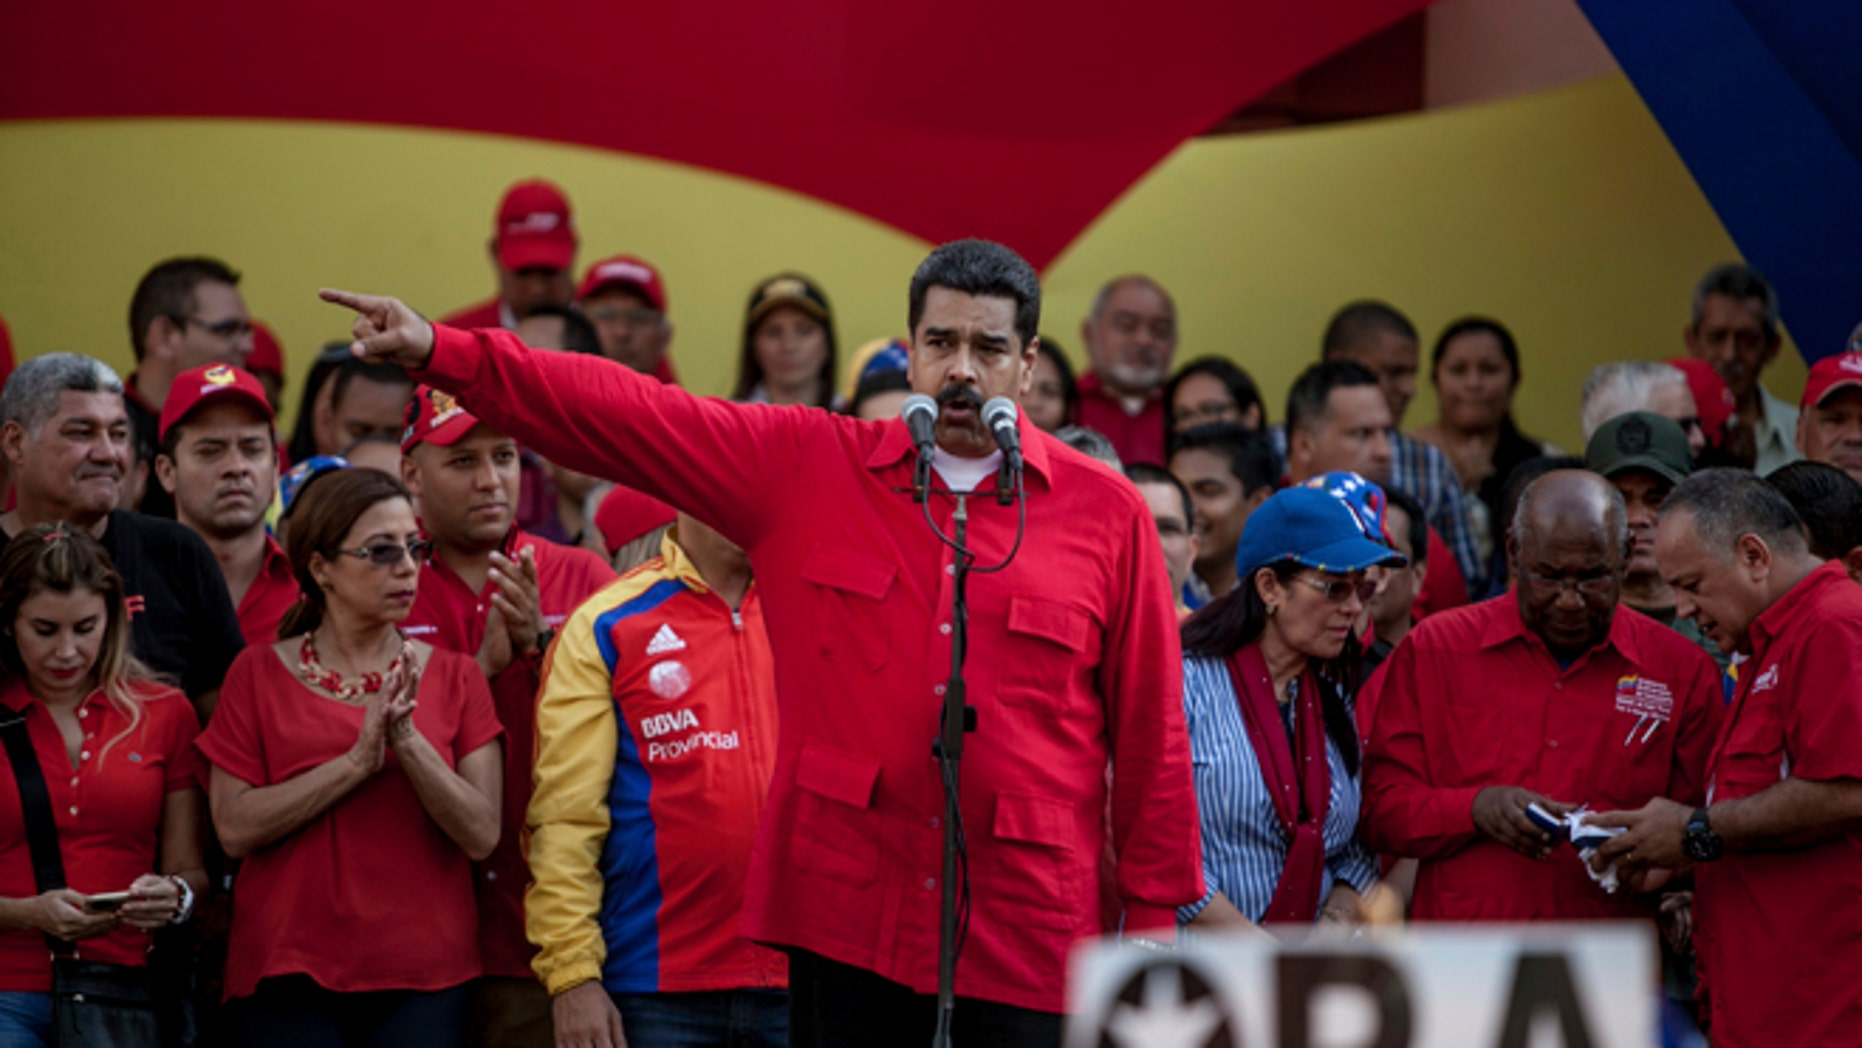 """Venezuela's President Nicolas Maduro speaks during a political rally against the opposition-controlled congress, in Caracas, Venezuela, Tuesday, Oct. 25, 2016. After the government suspended a recall referendum seeking Maduro's removal last week, the congress began debating his """"constitutional situation."""" Lawmakers vow to present evidence that Maduro is a dual Colombian citizen and therefore constitutionally ineligible to hold Venezuela's highest office. (AP Photo/Alejandro Cegarra)"""